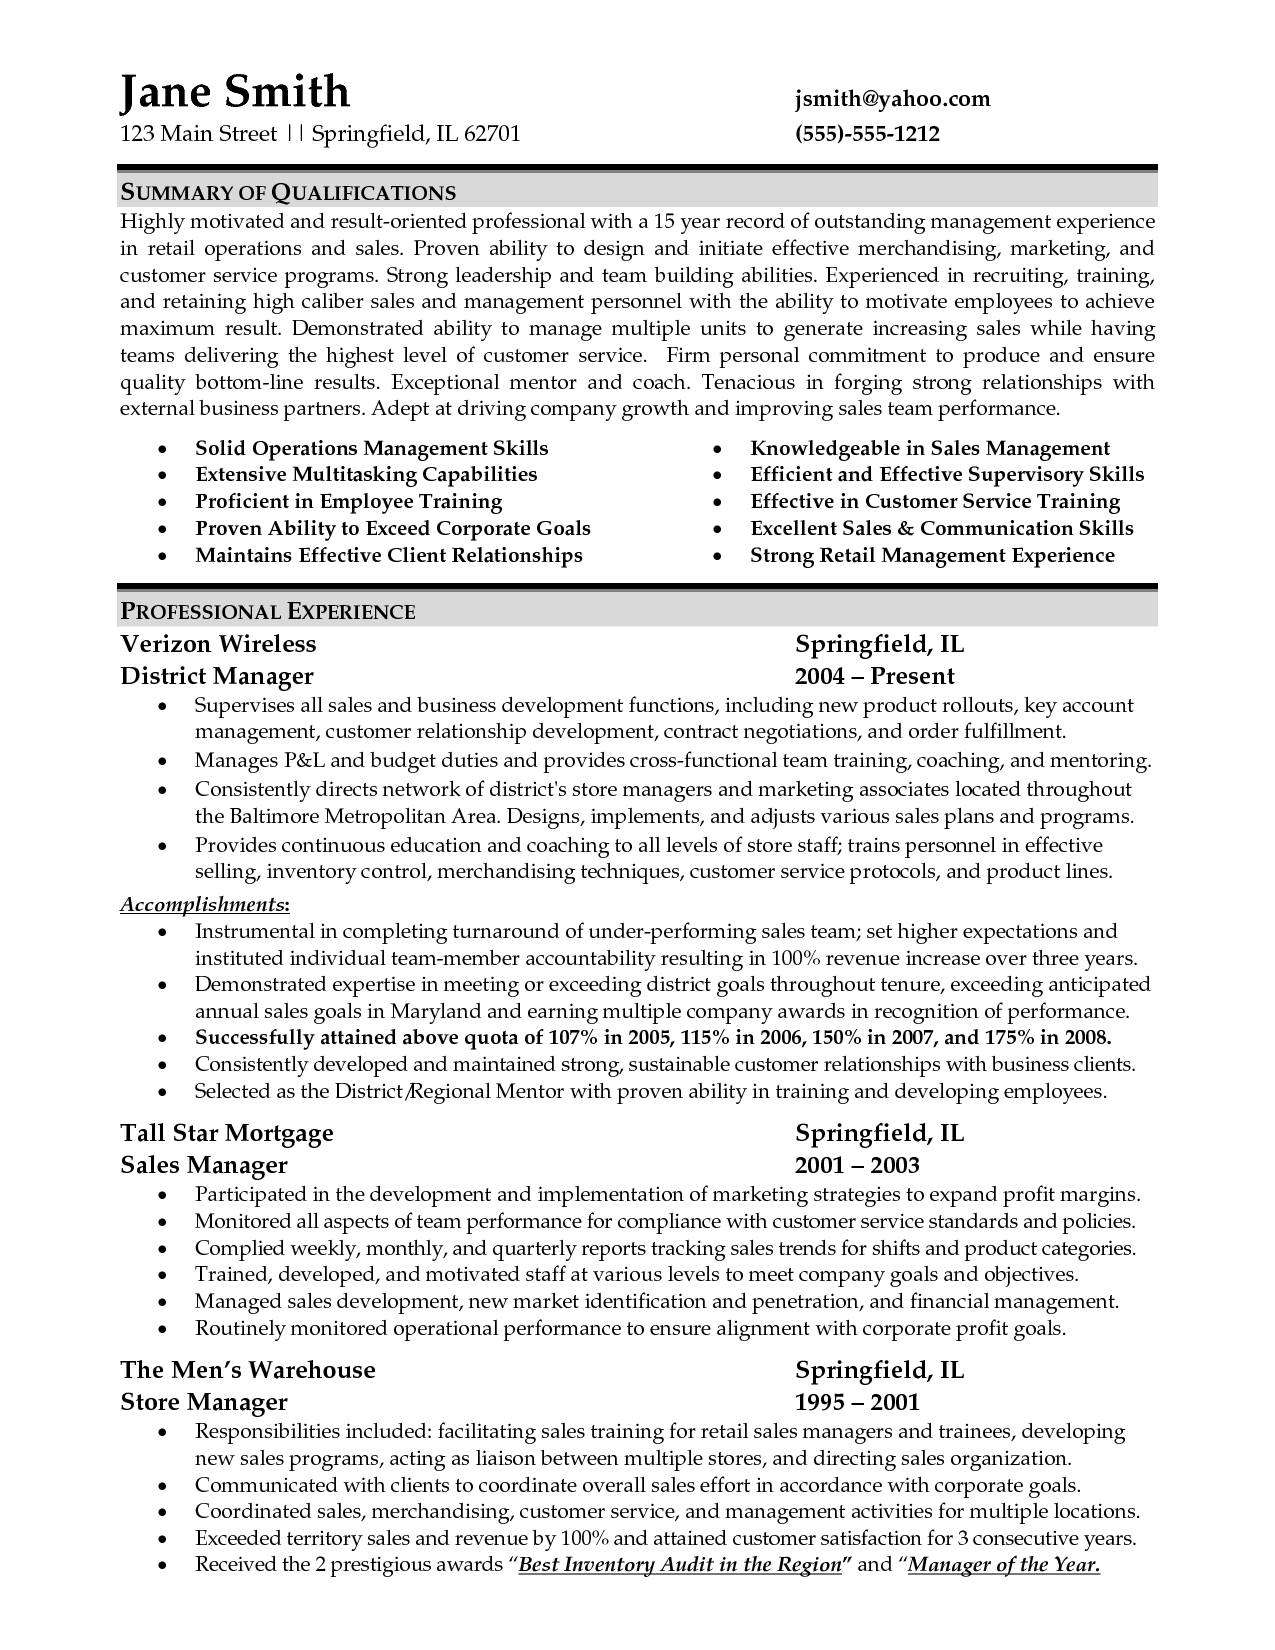 sample resume for retail management job | Retail Store Manager ...